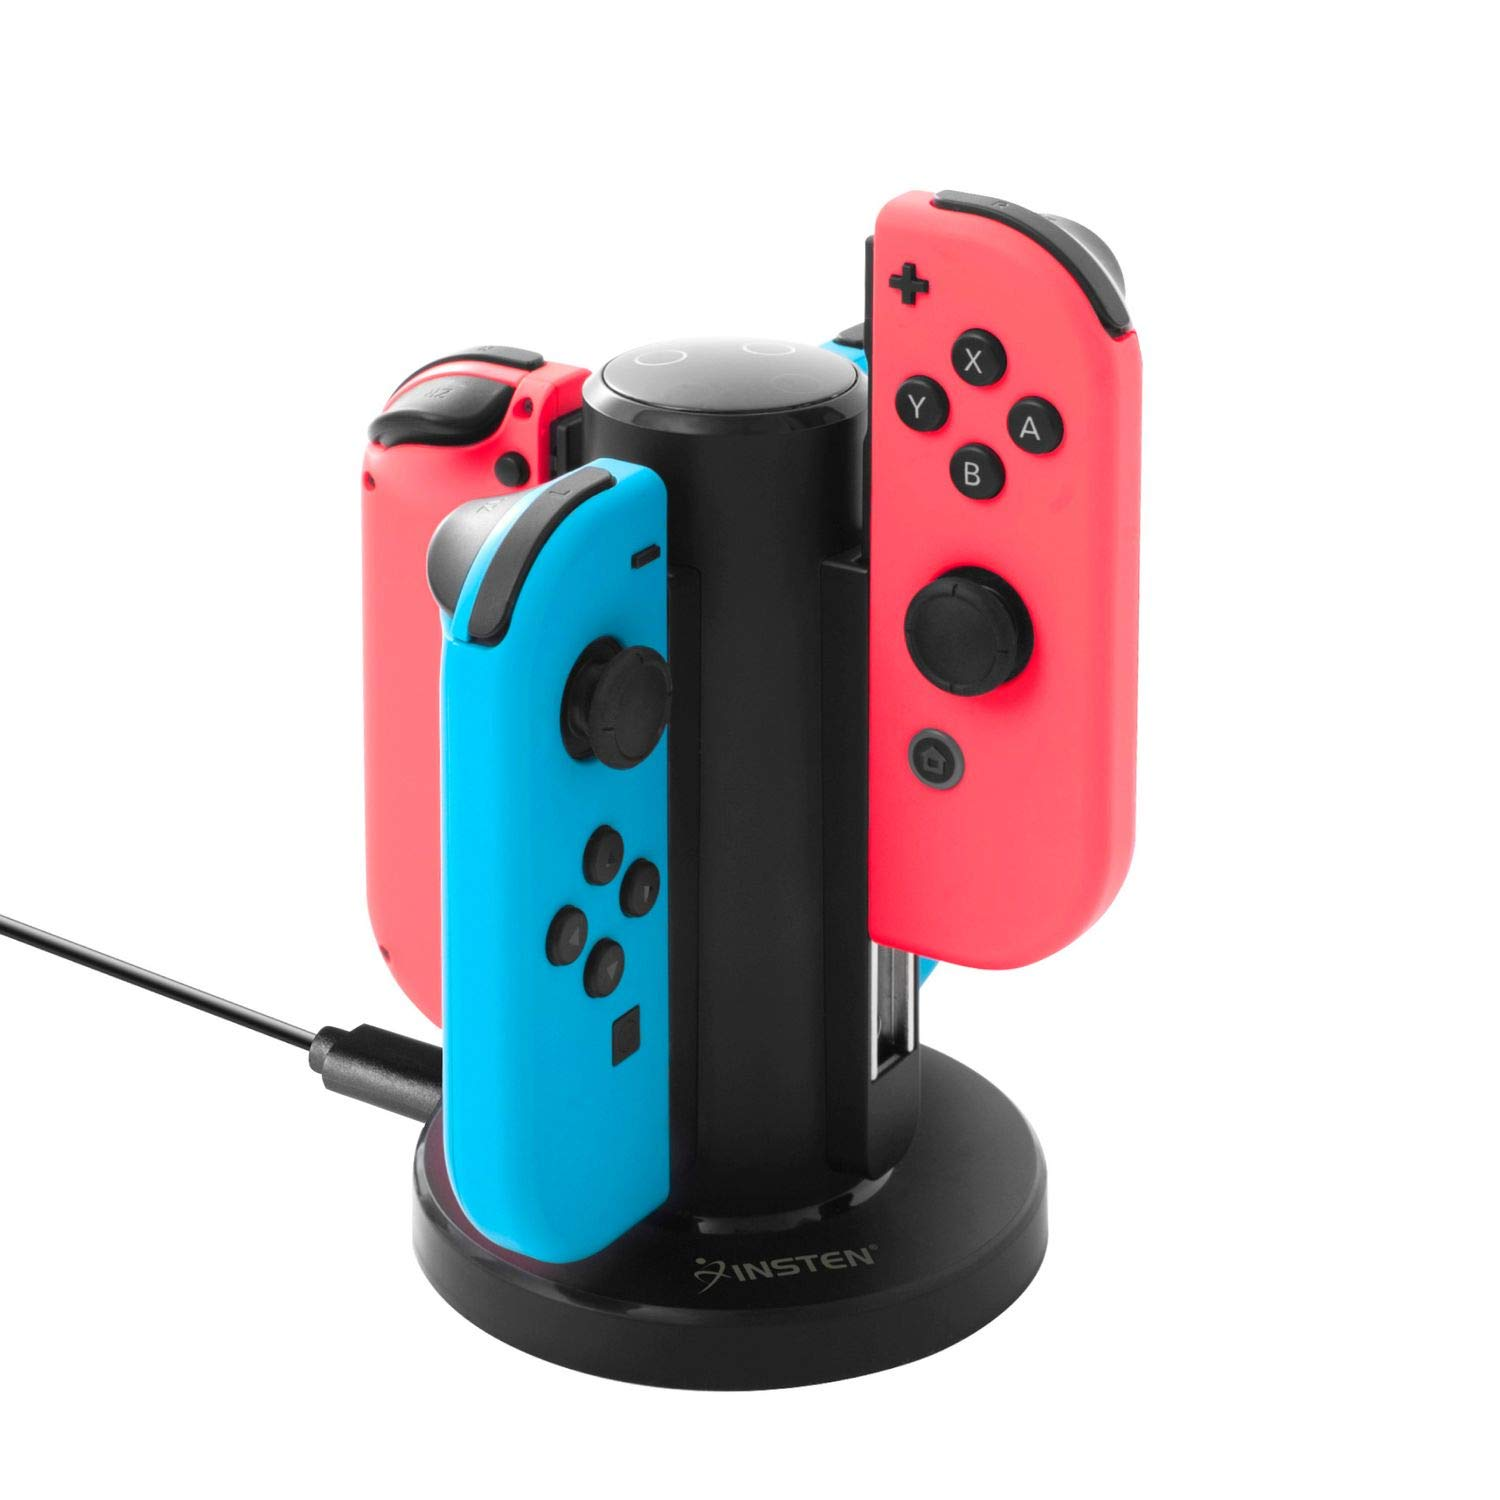 Insten Joy Con Charger for Nintendo Switch by Insten 4 in 1 Joy-Con Charging Dock Station with Individual LED Charge Indicator and USB Cable for Nintendo Switch JoyCon Controller Console Accessories by INSTEN